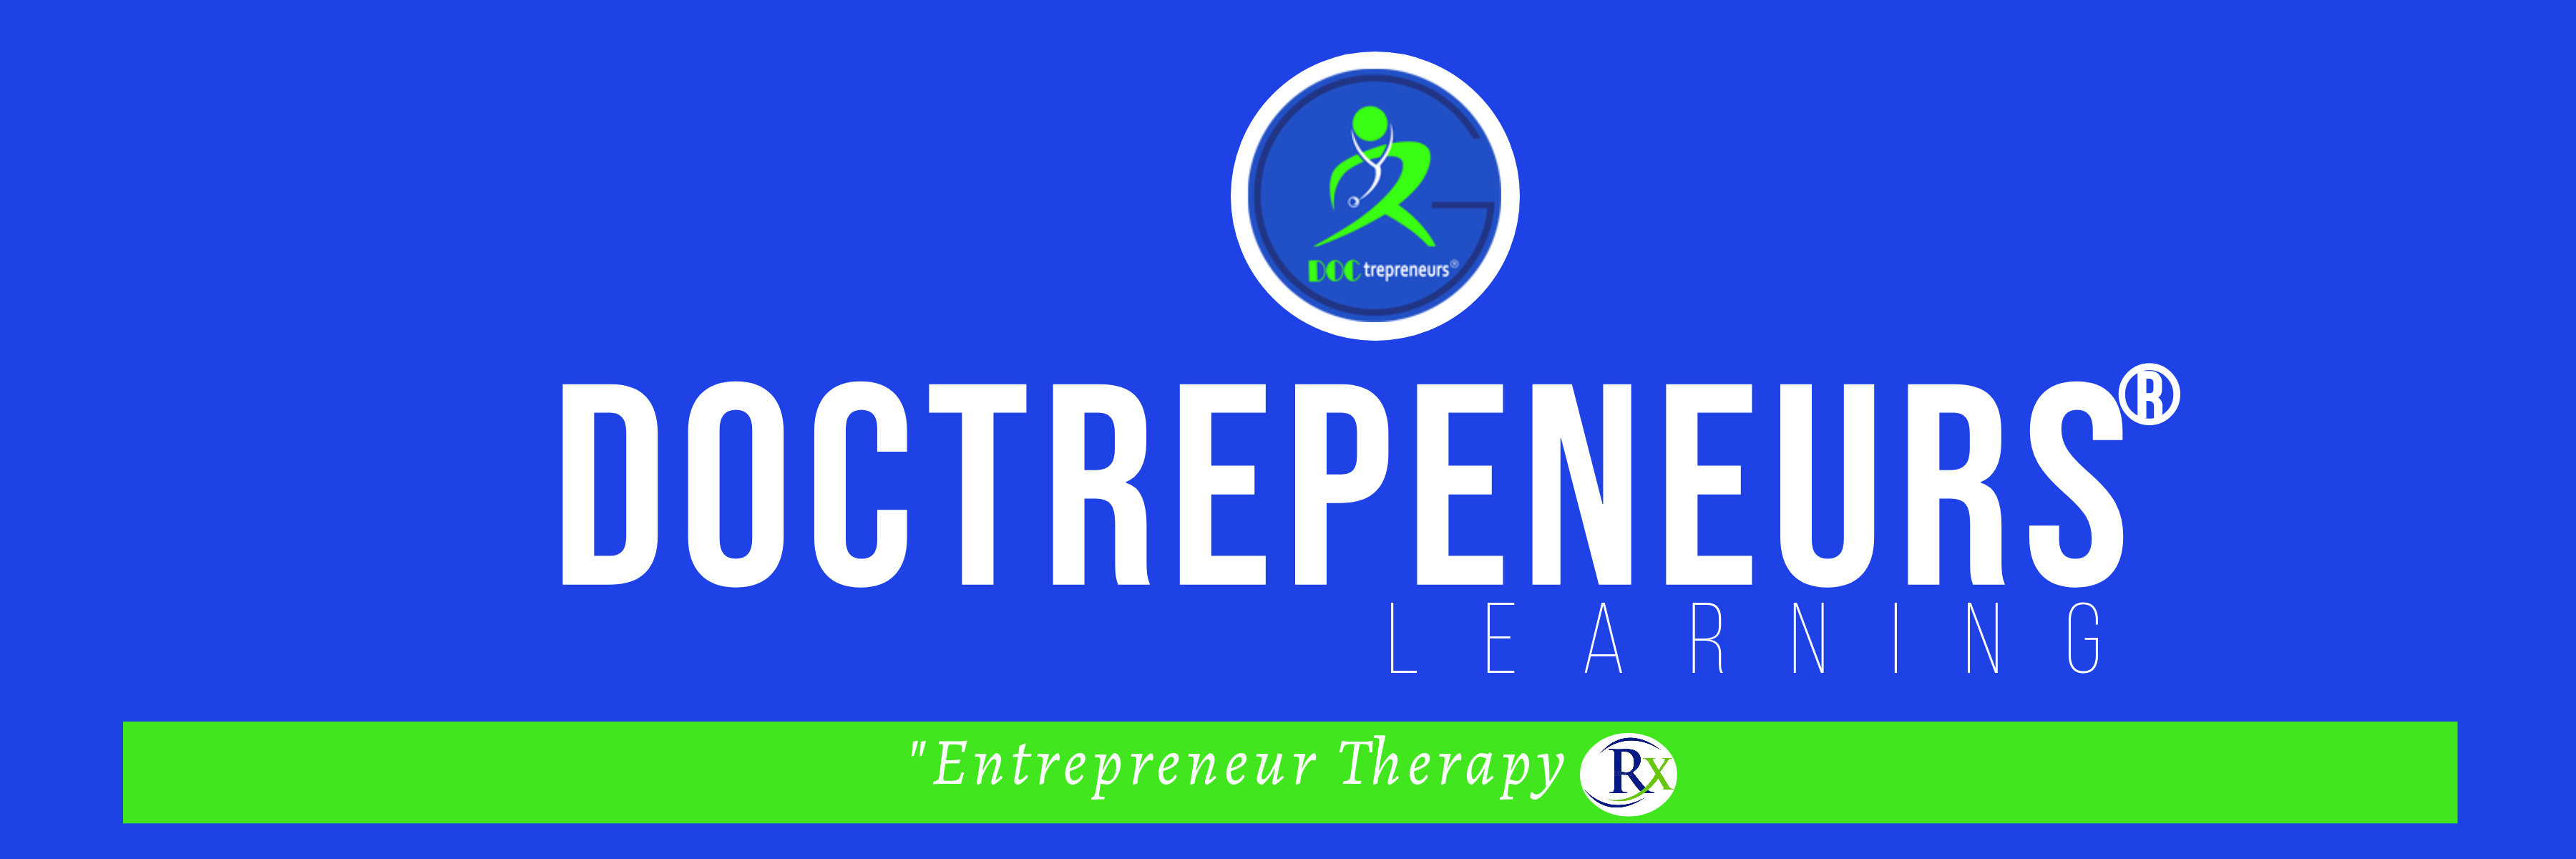 Doctrepreneurs